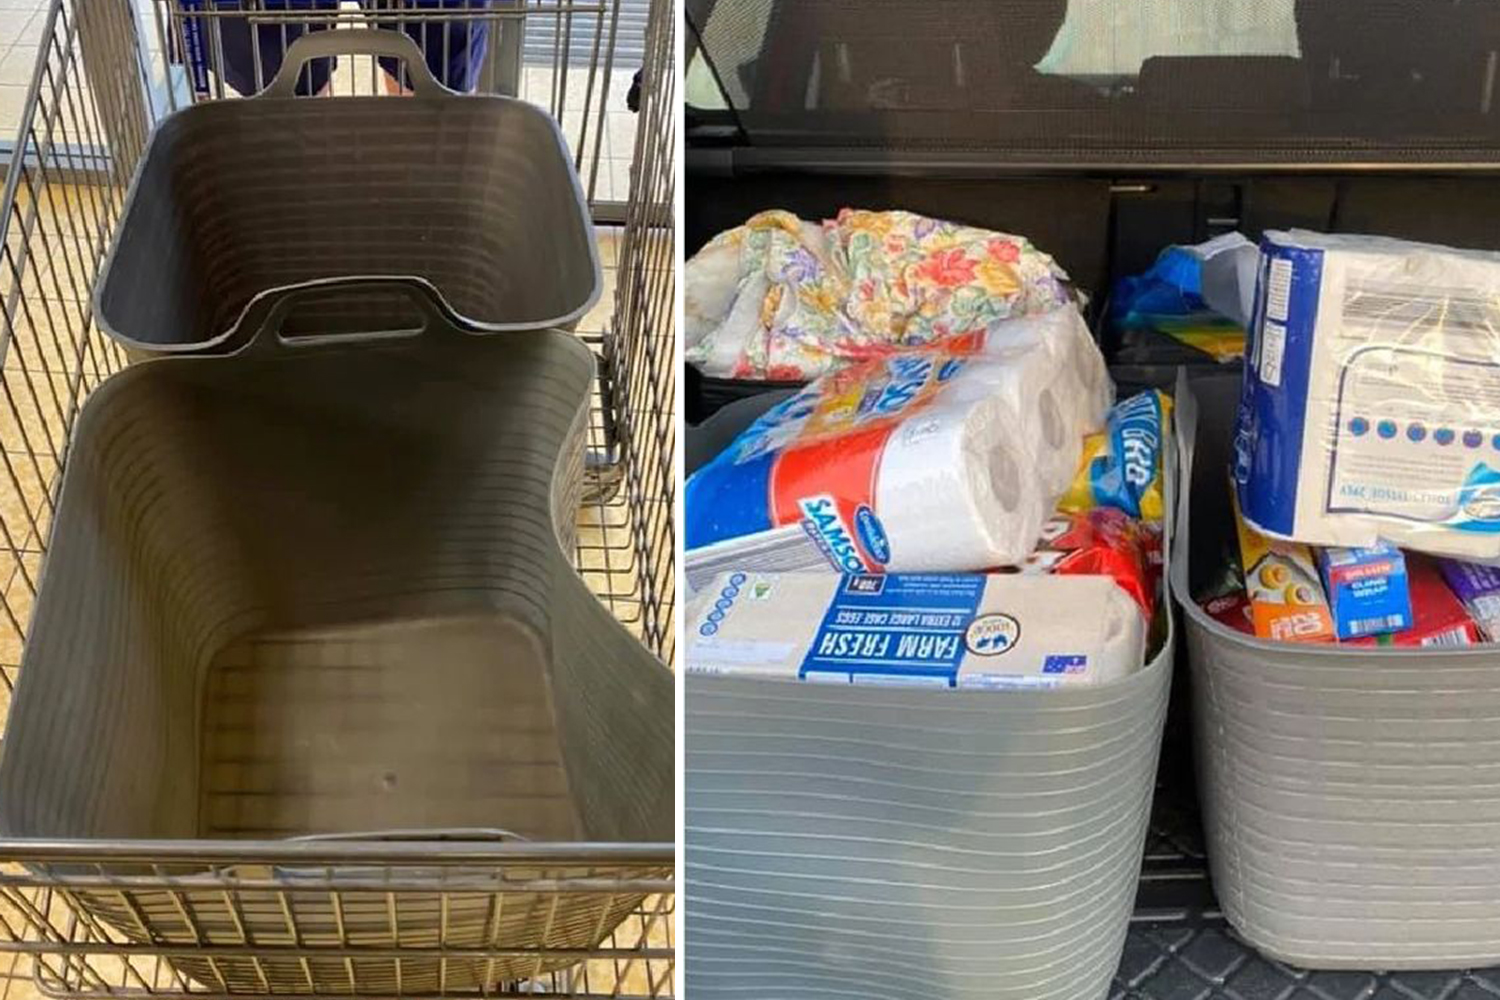 The Aldi shopper shares a clever trick that makes grocery packaging much easier - The Sun